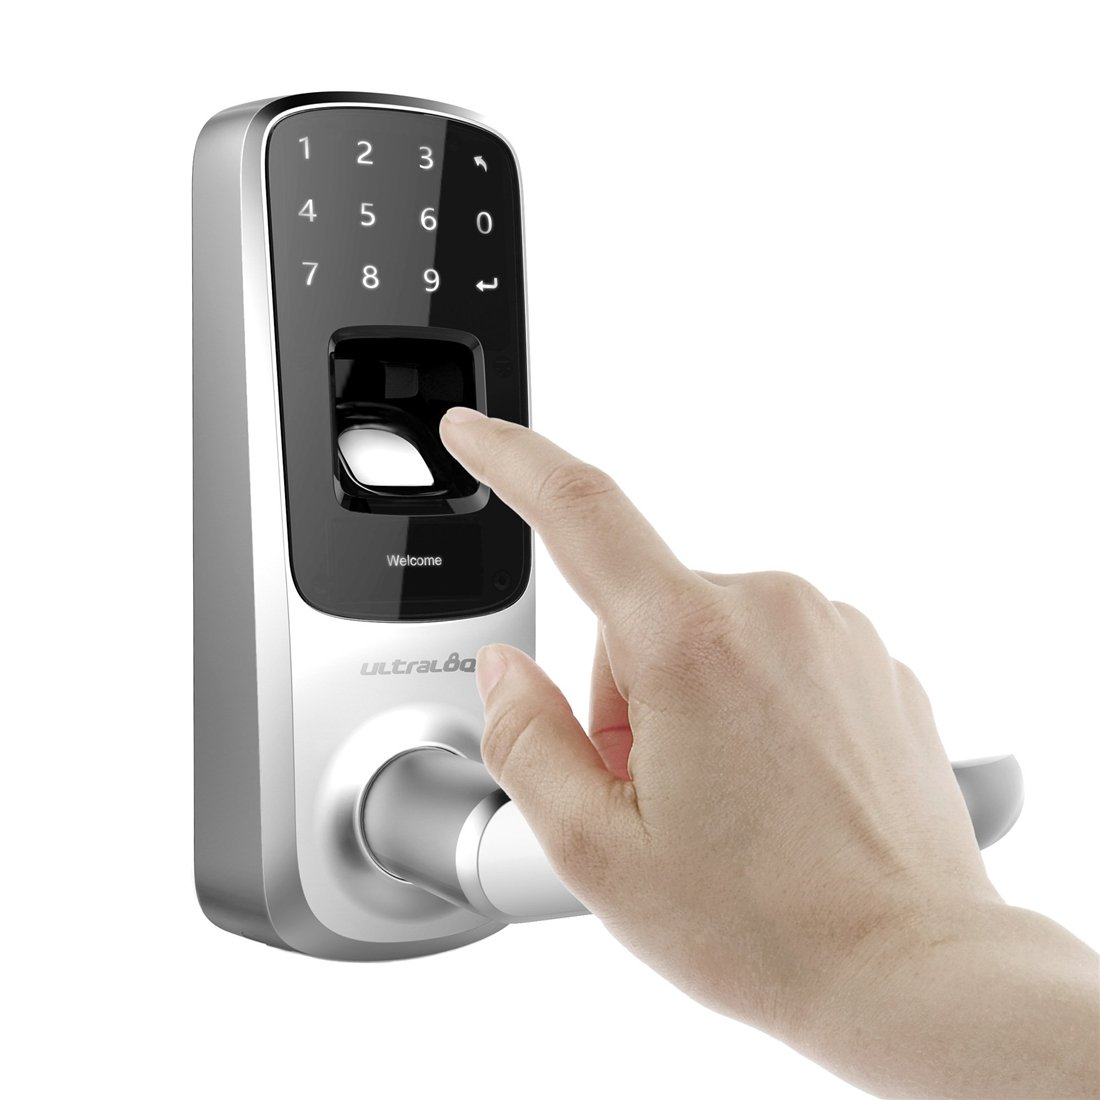 Ultraloq UL3-BT Bluetooth[Upgraded Version] Enabled Fingerprint and Touchscreen Smart Door Lock by Ardwolf